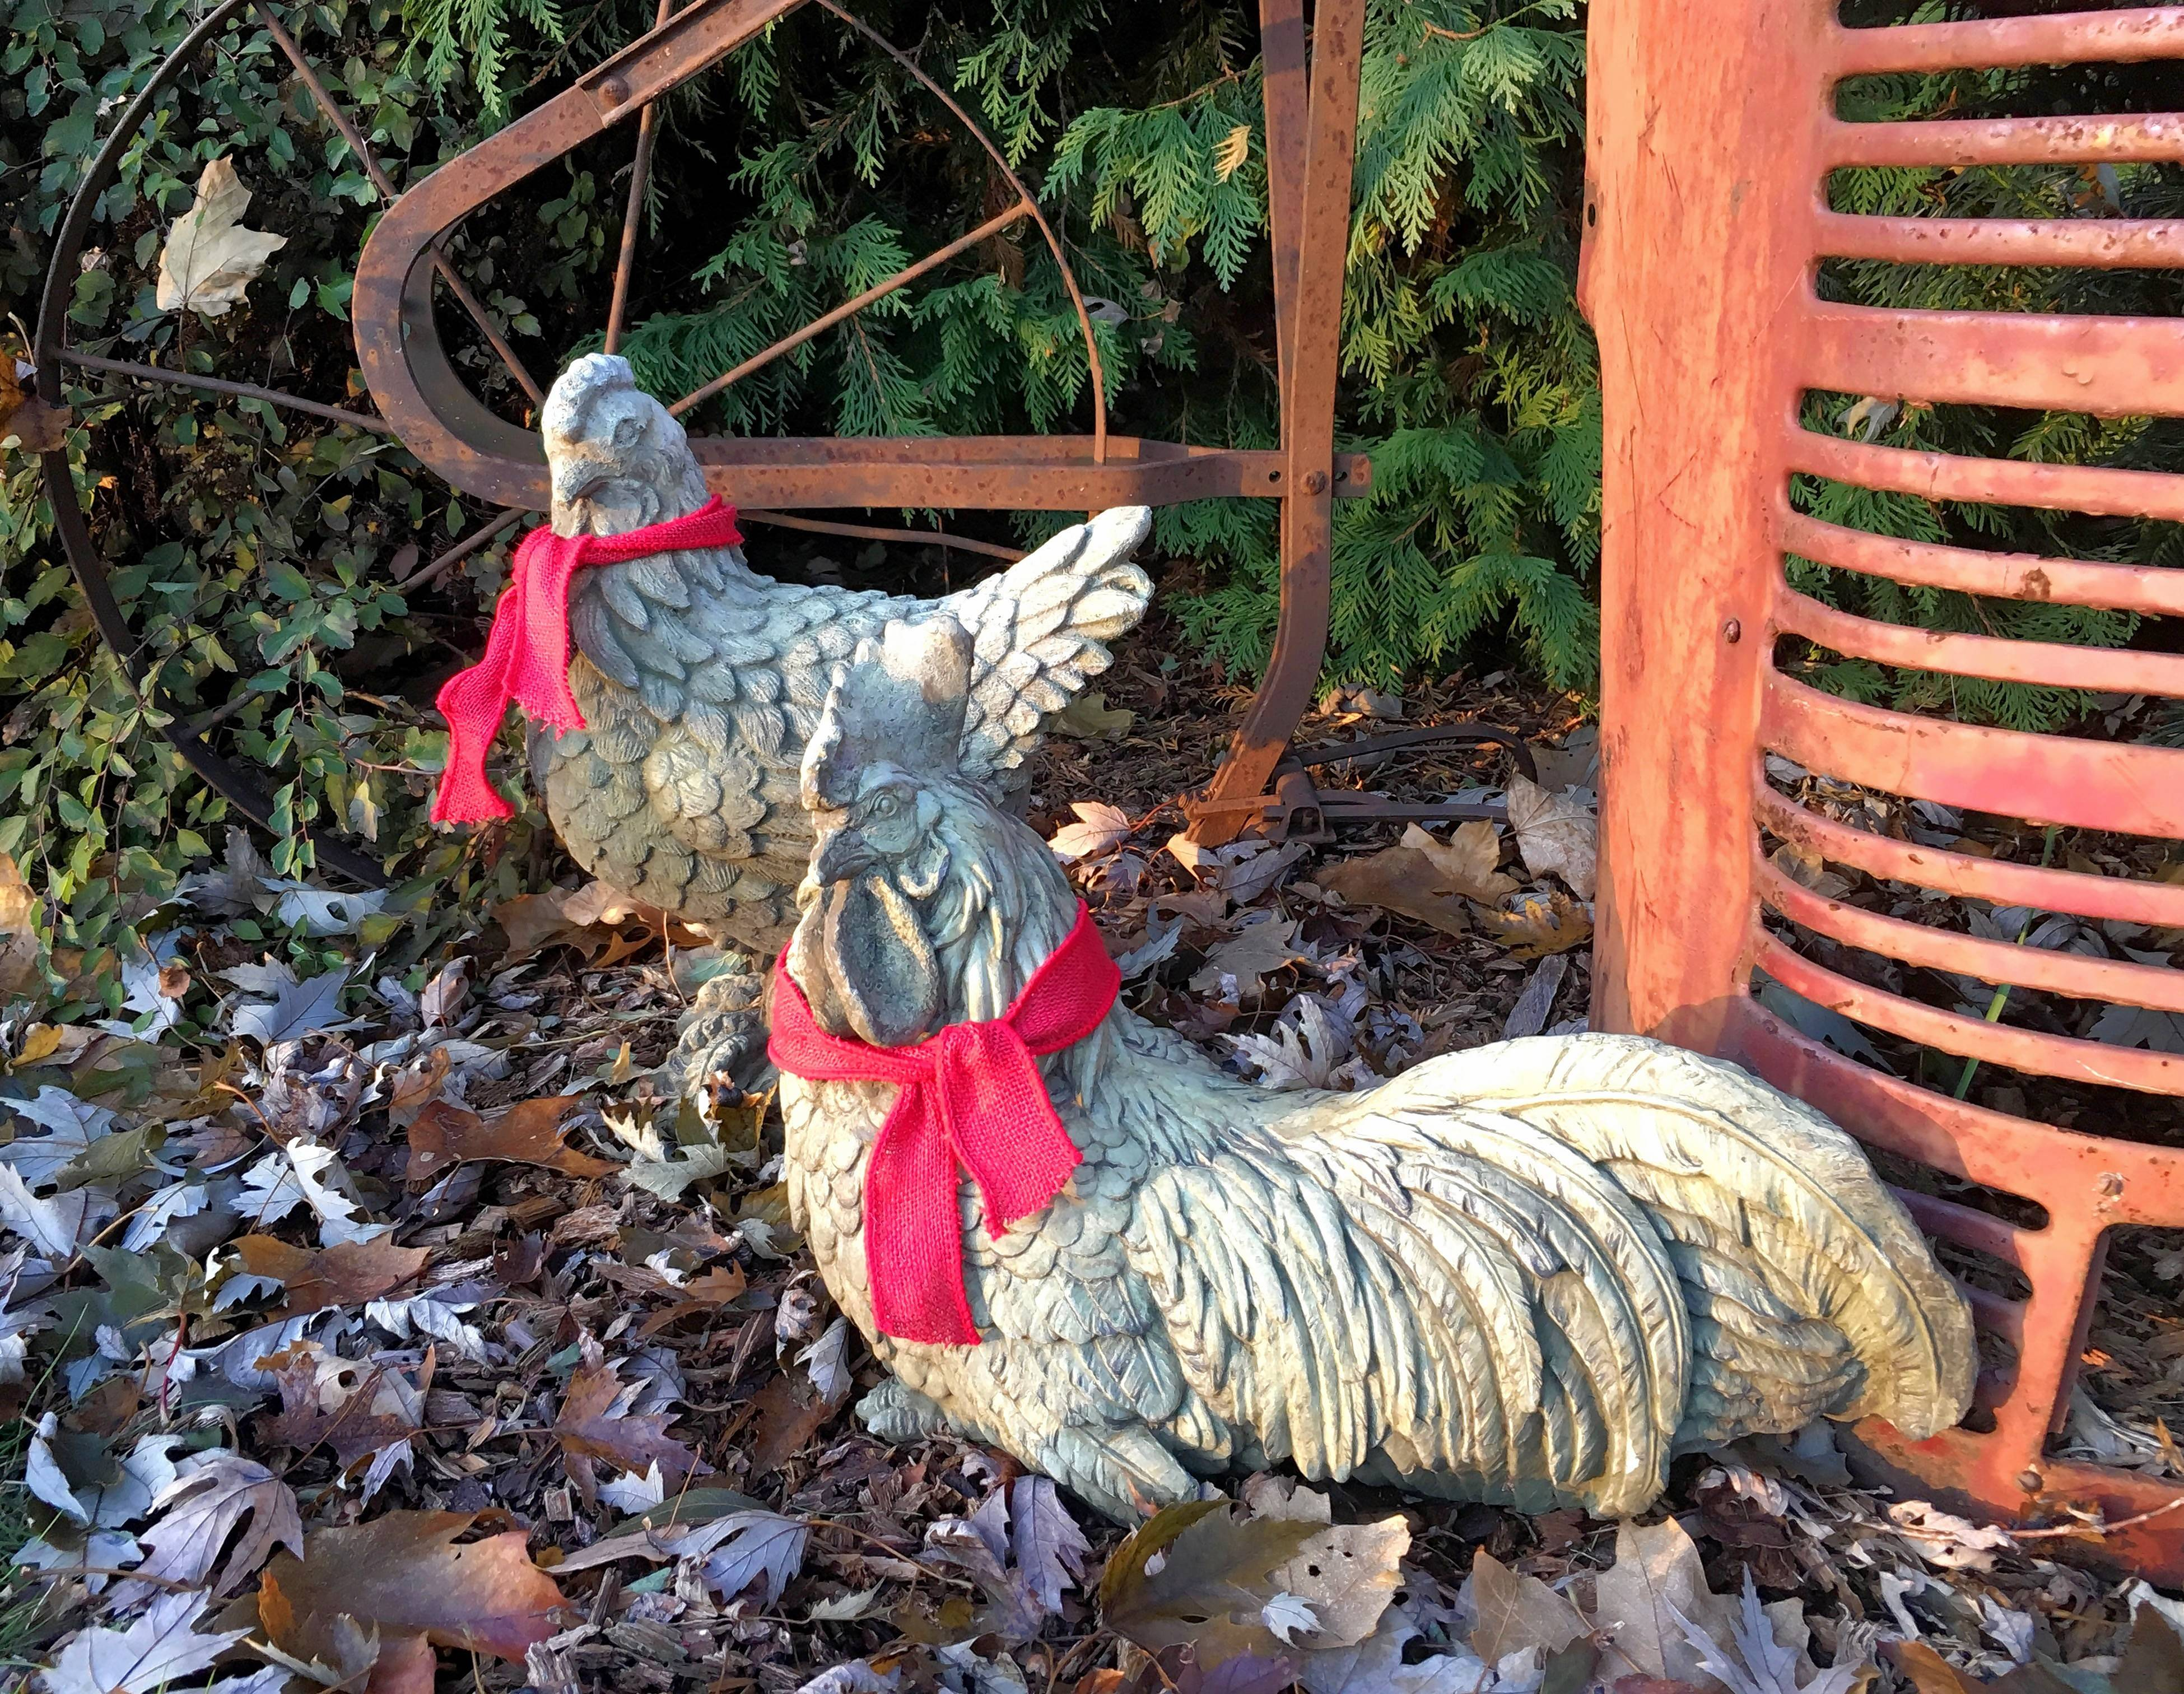 Chickens in the author's garden get red ribbon scarves for the holidays.